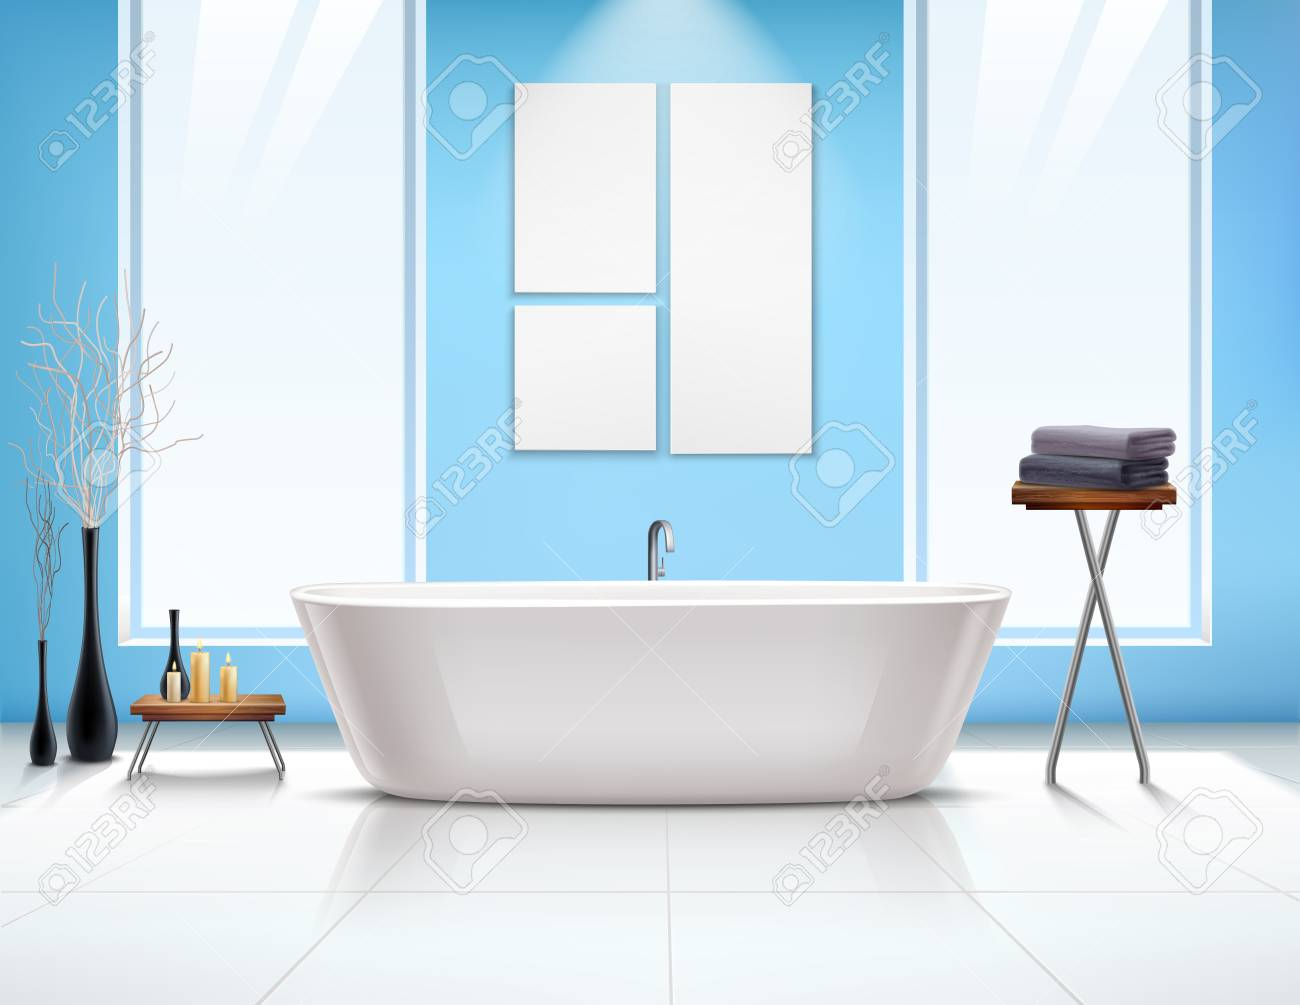 Colored Bathroom Interior Composition In Realistic Style With ...